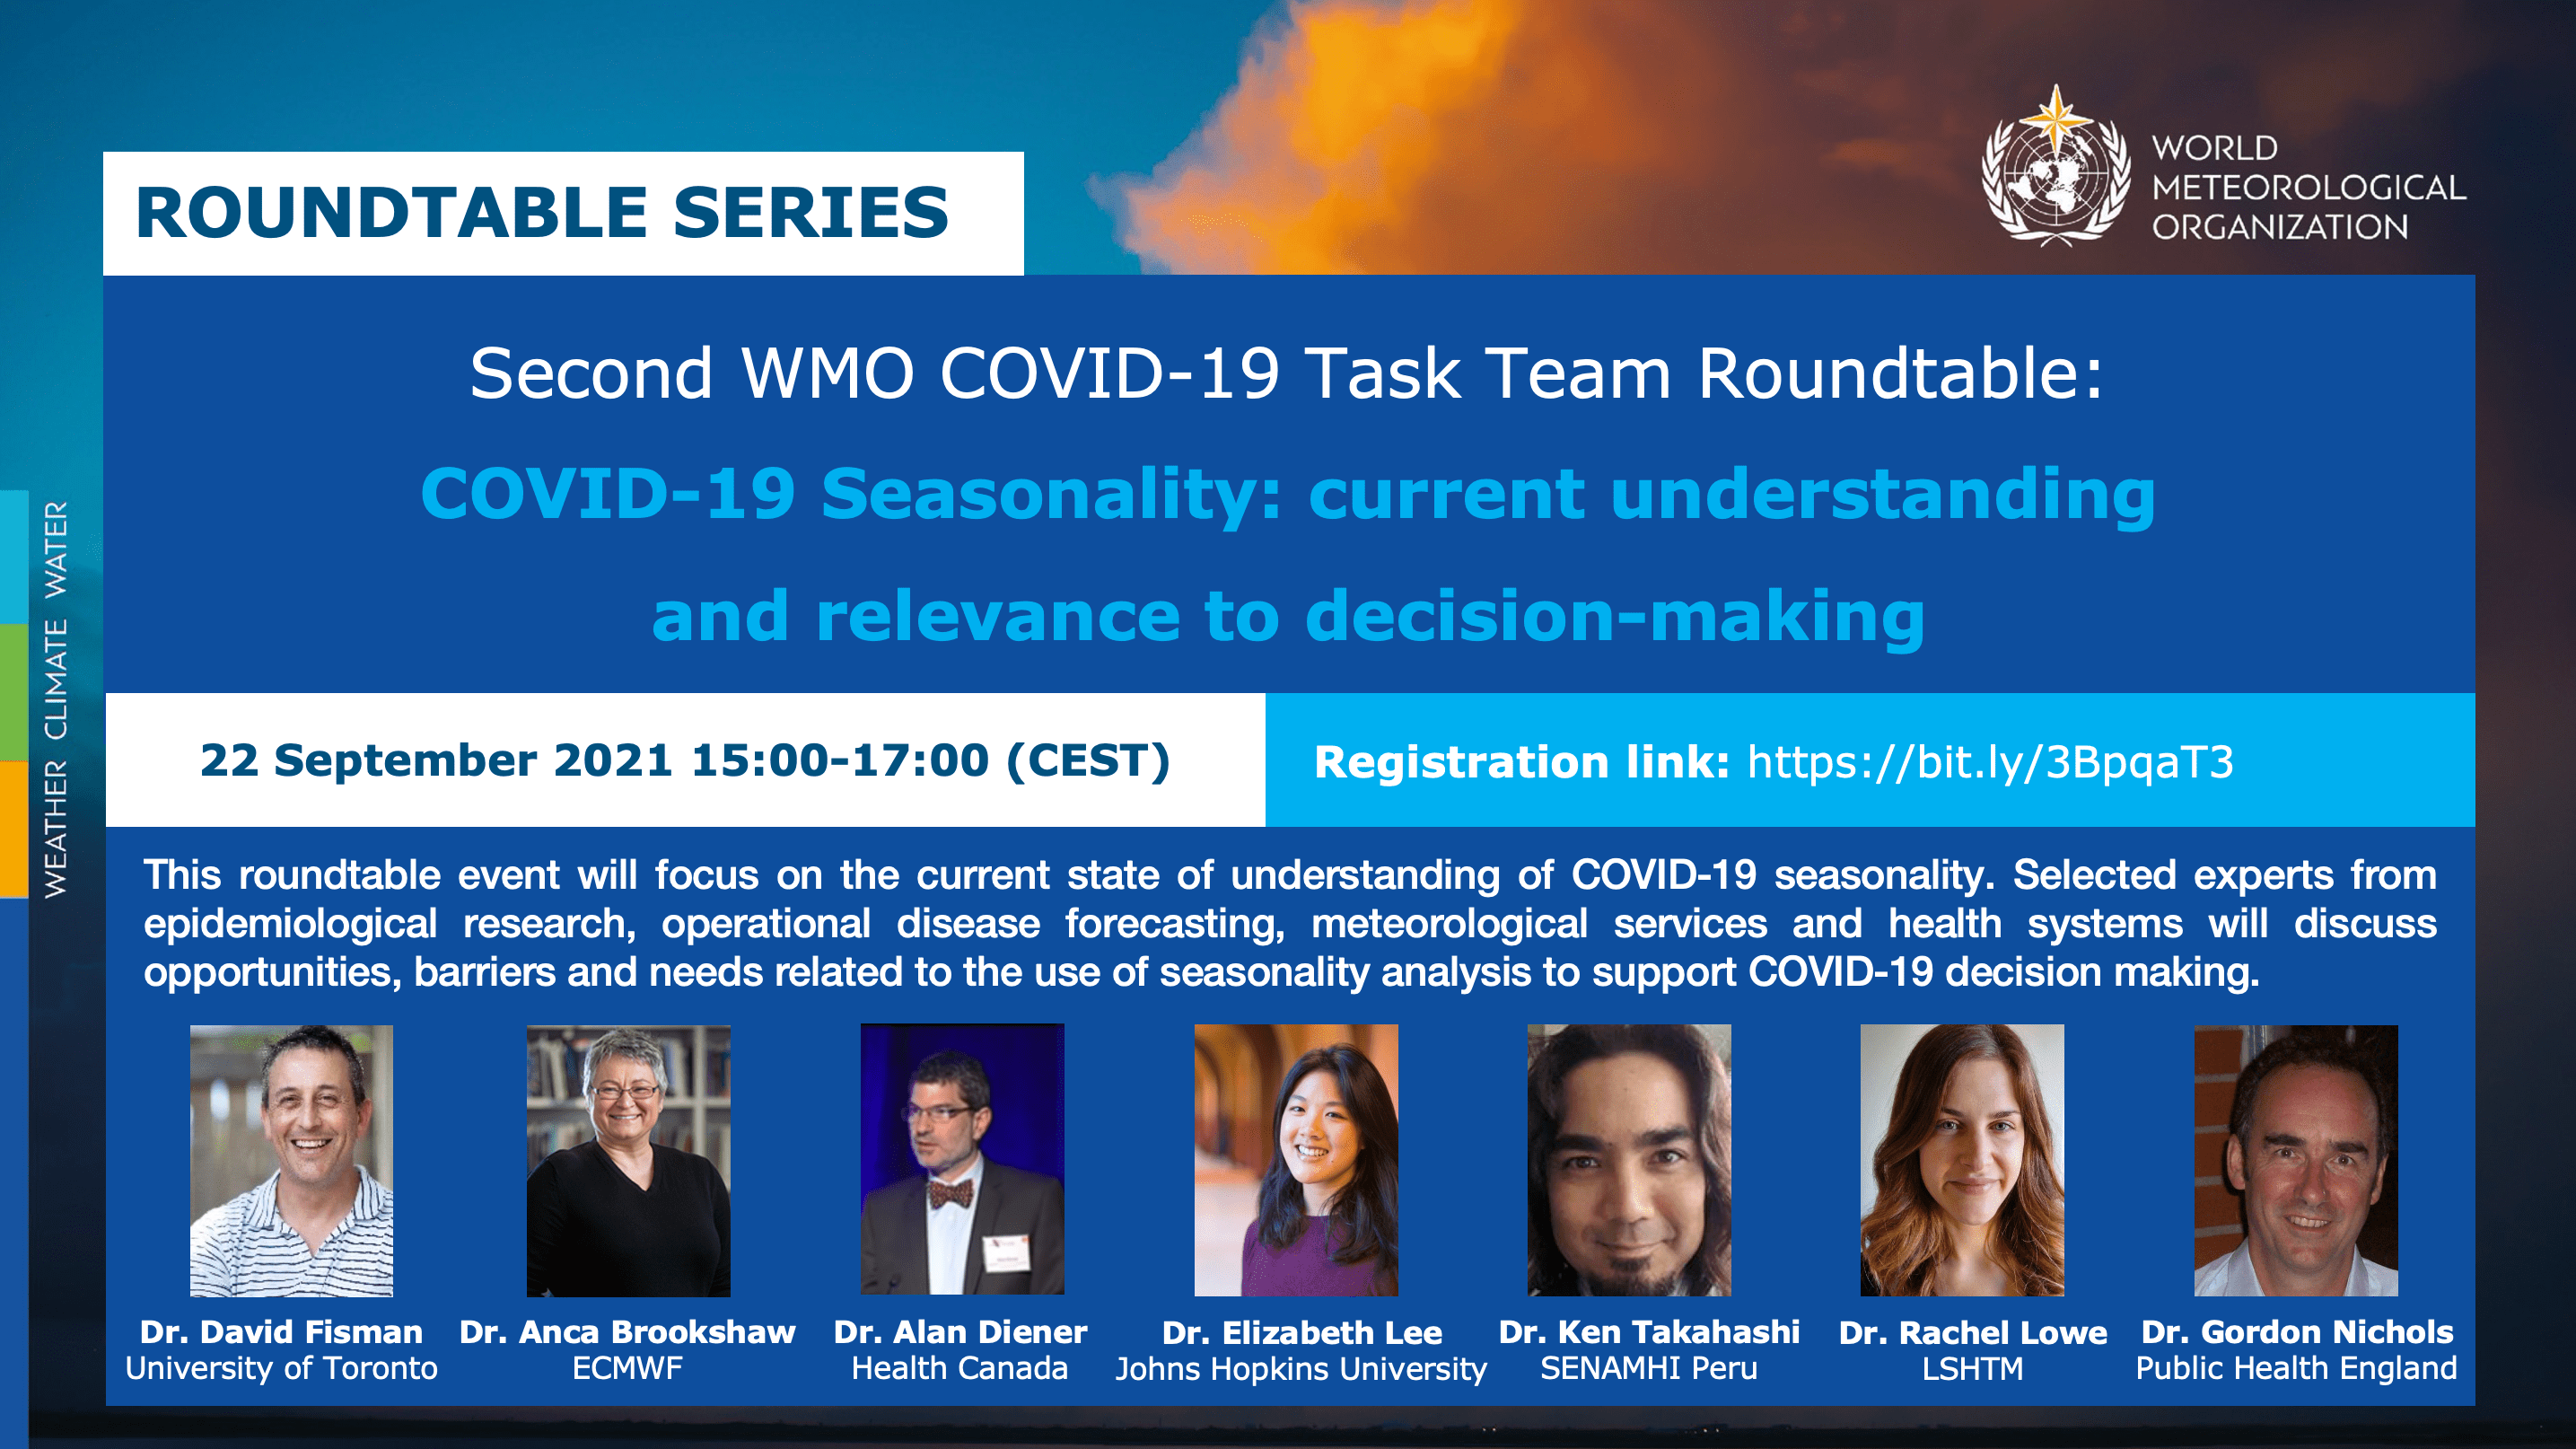 Second COVID-19 Task Team Roundtable - Flyer